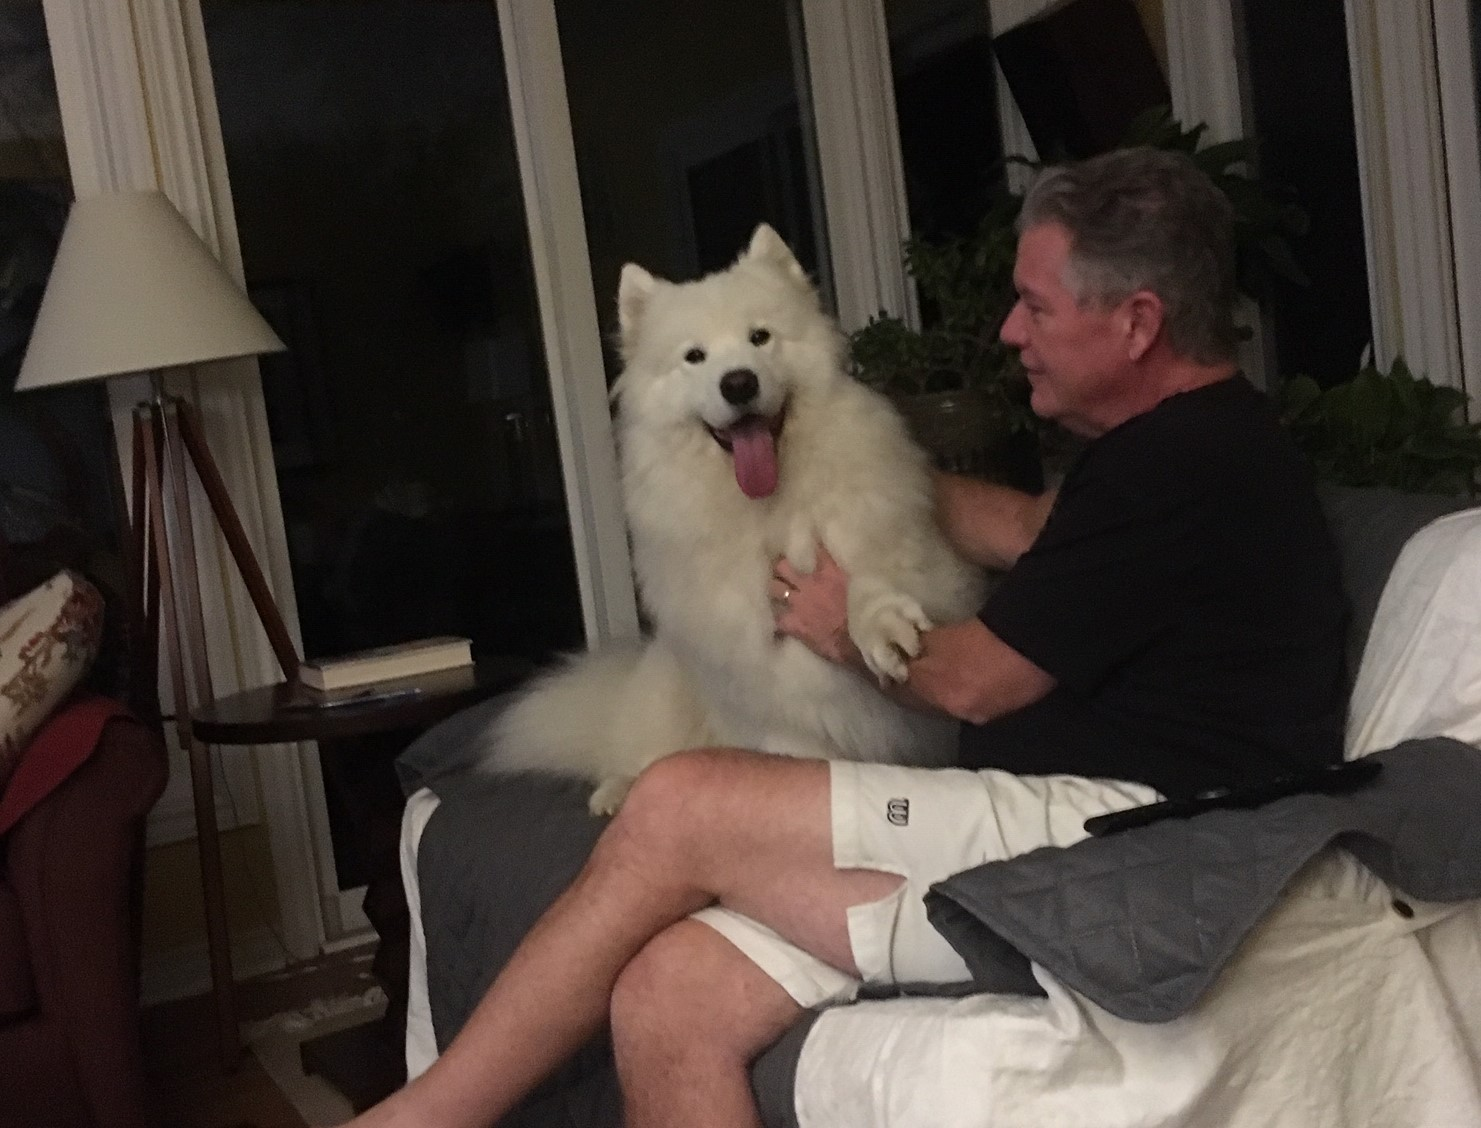 A man and a white samoyed